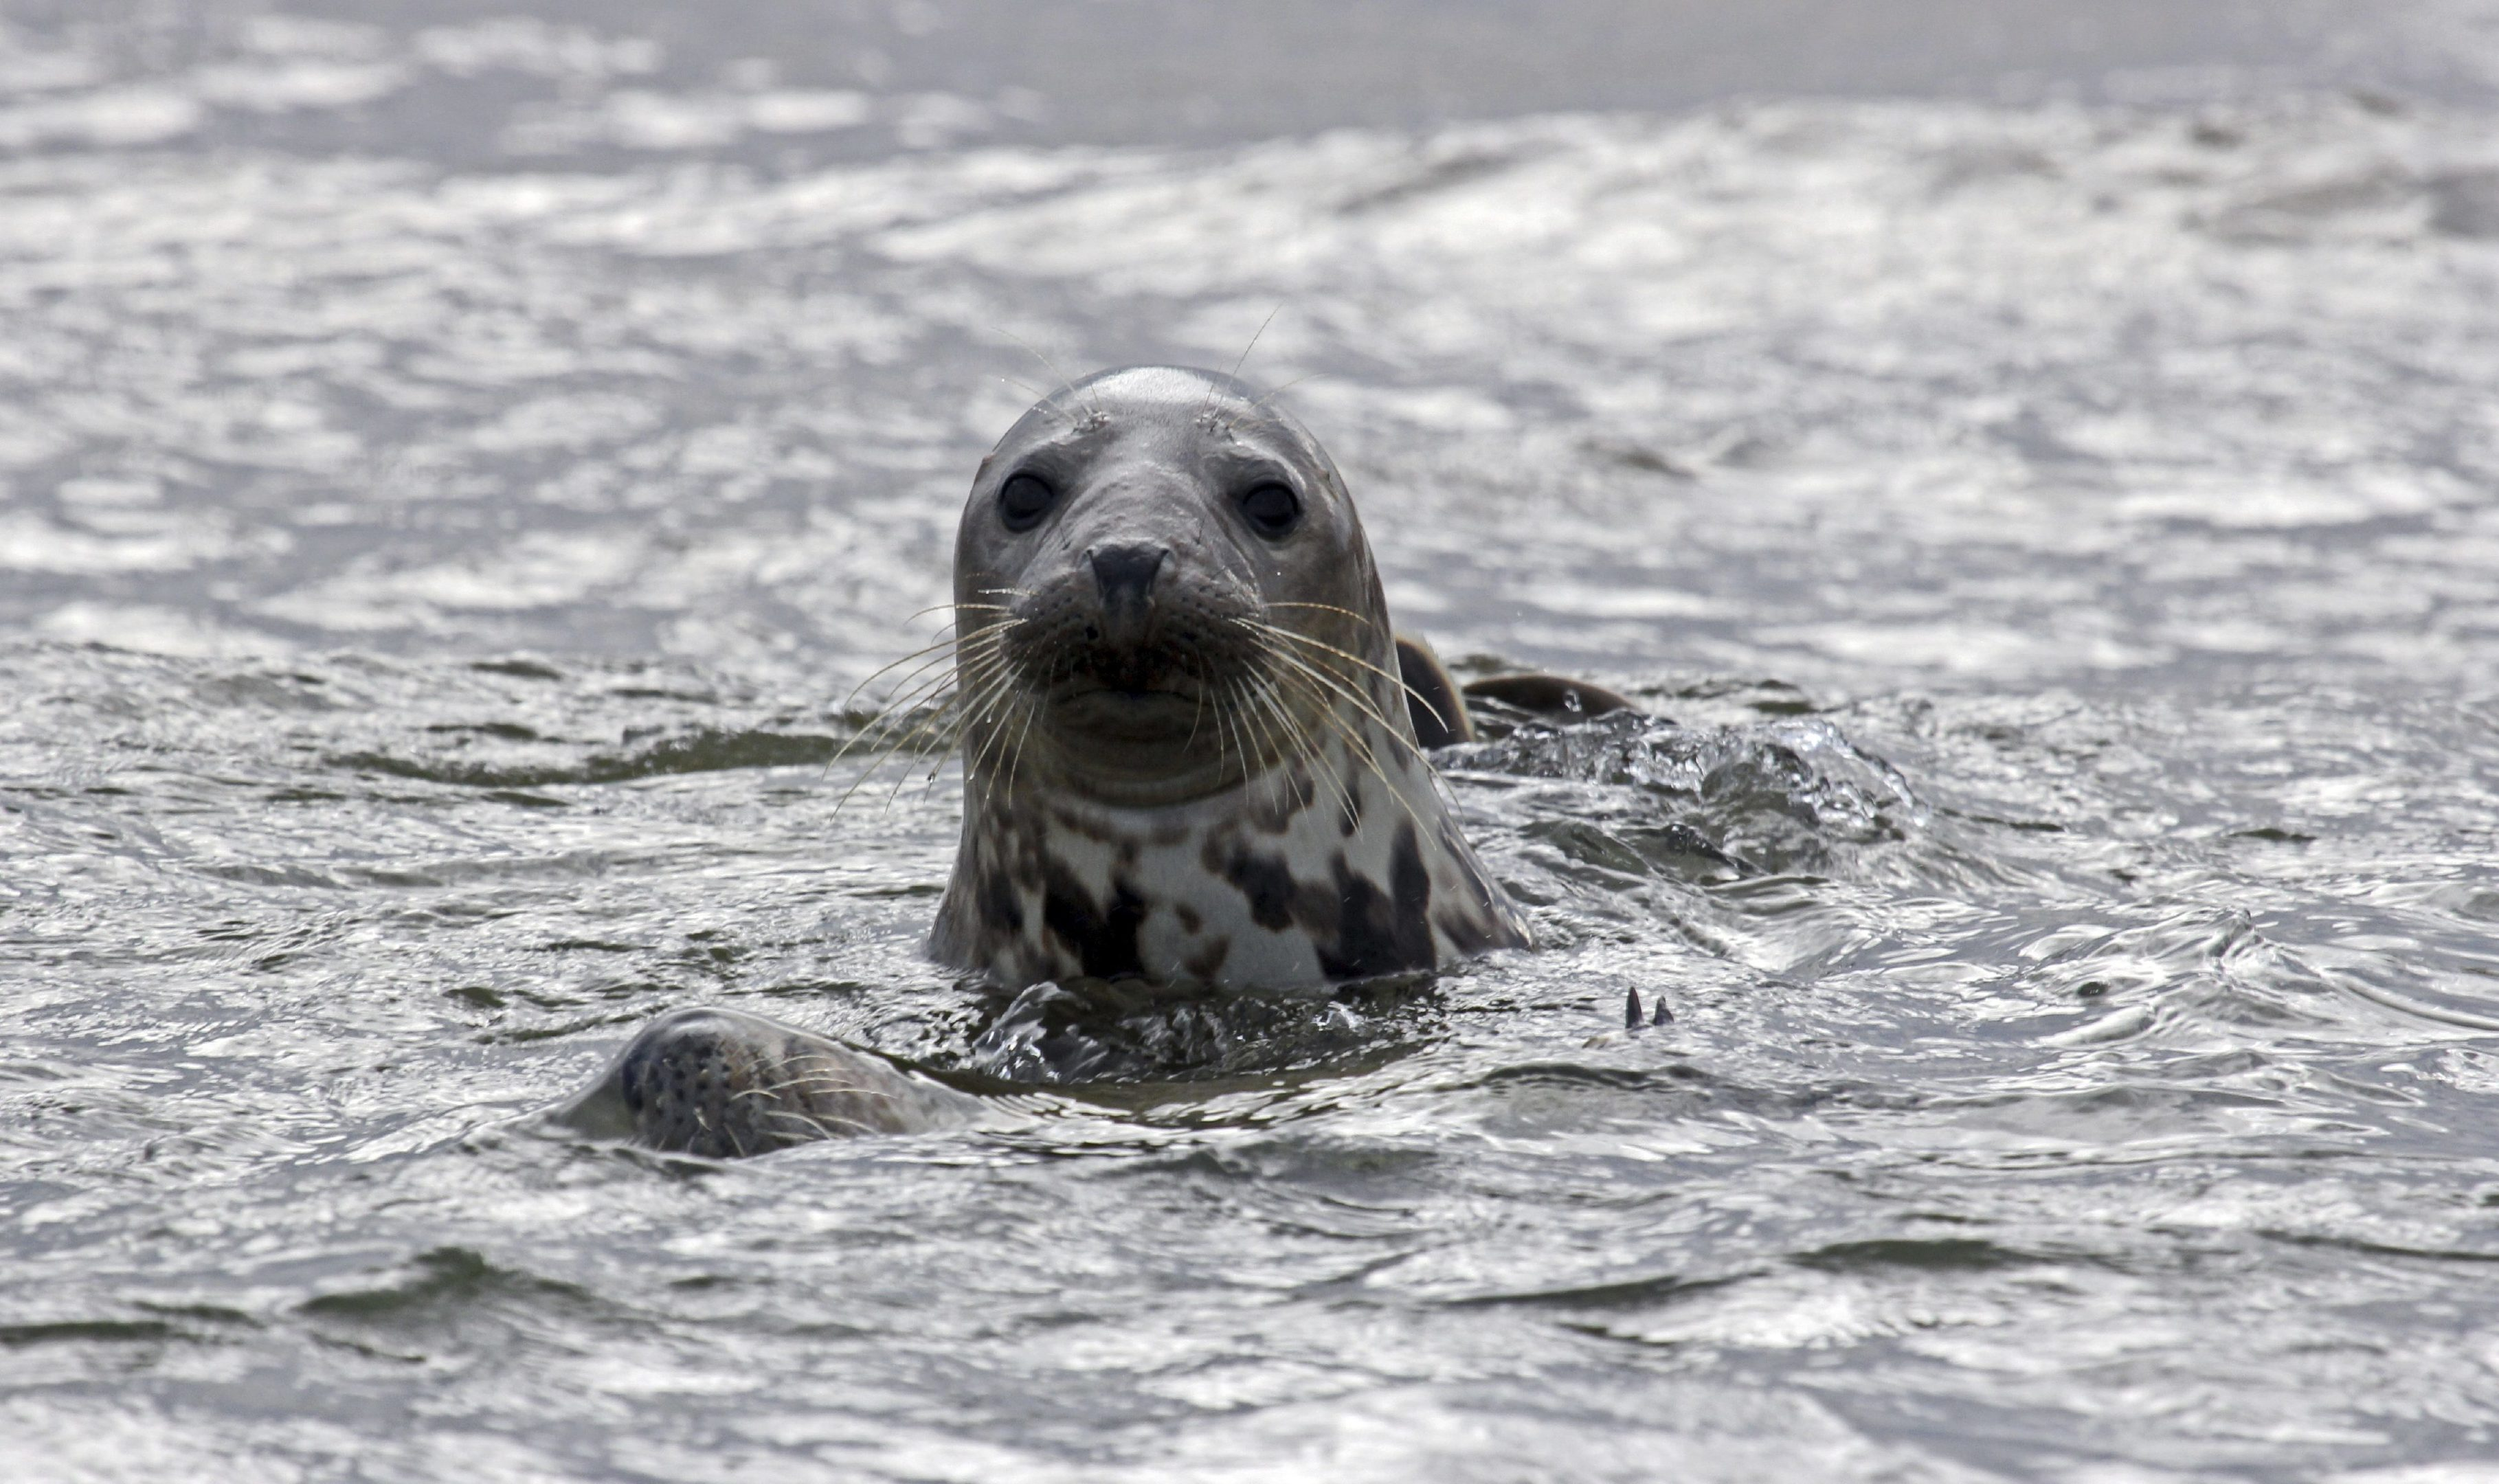 Should seals be culled?